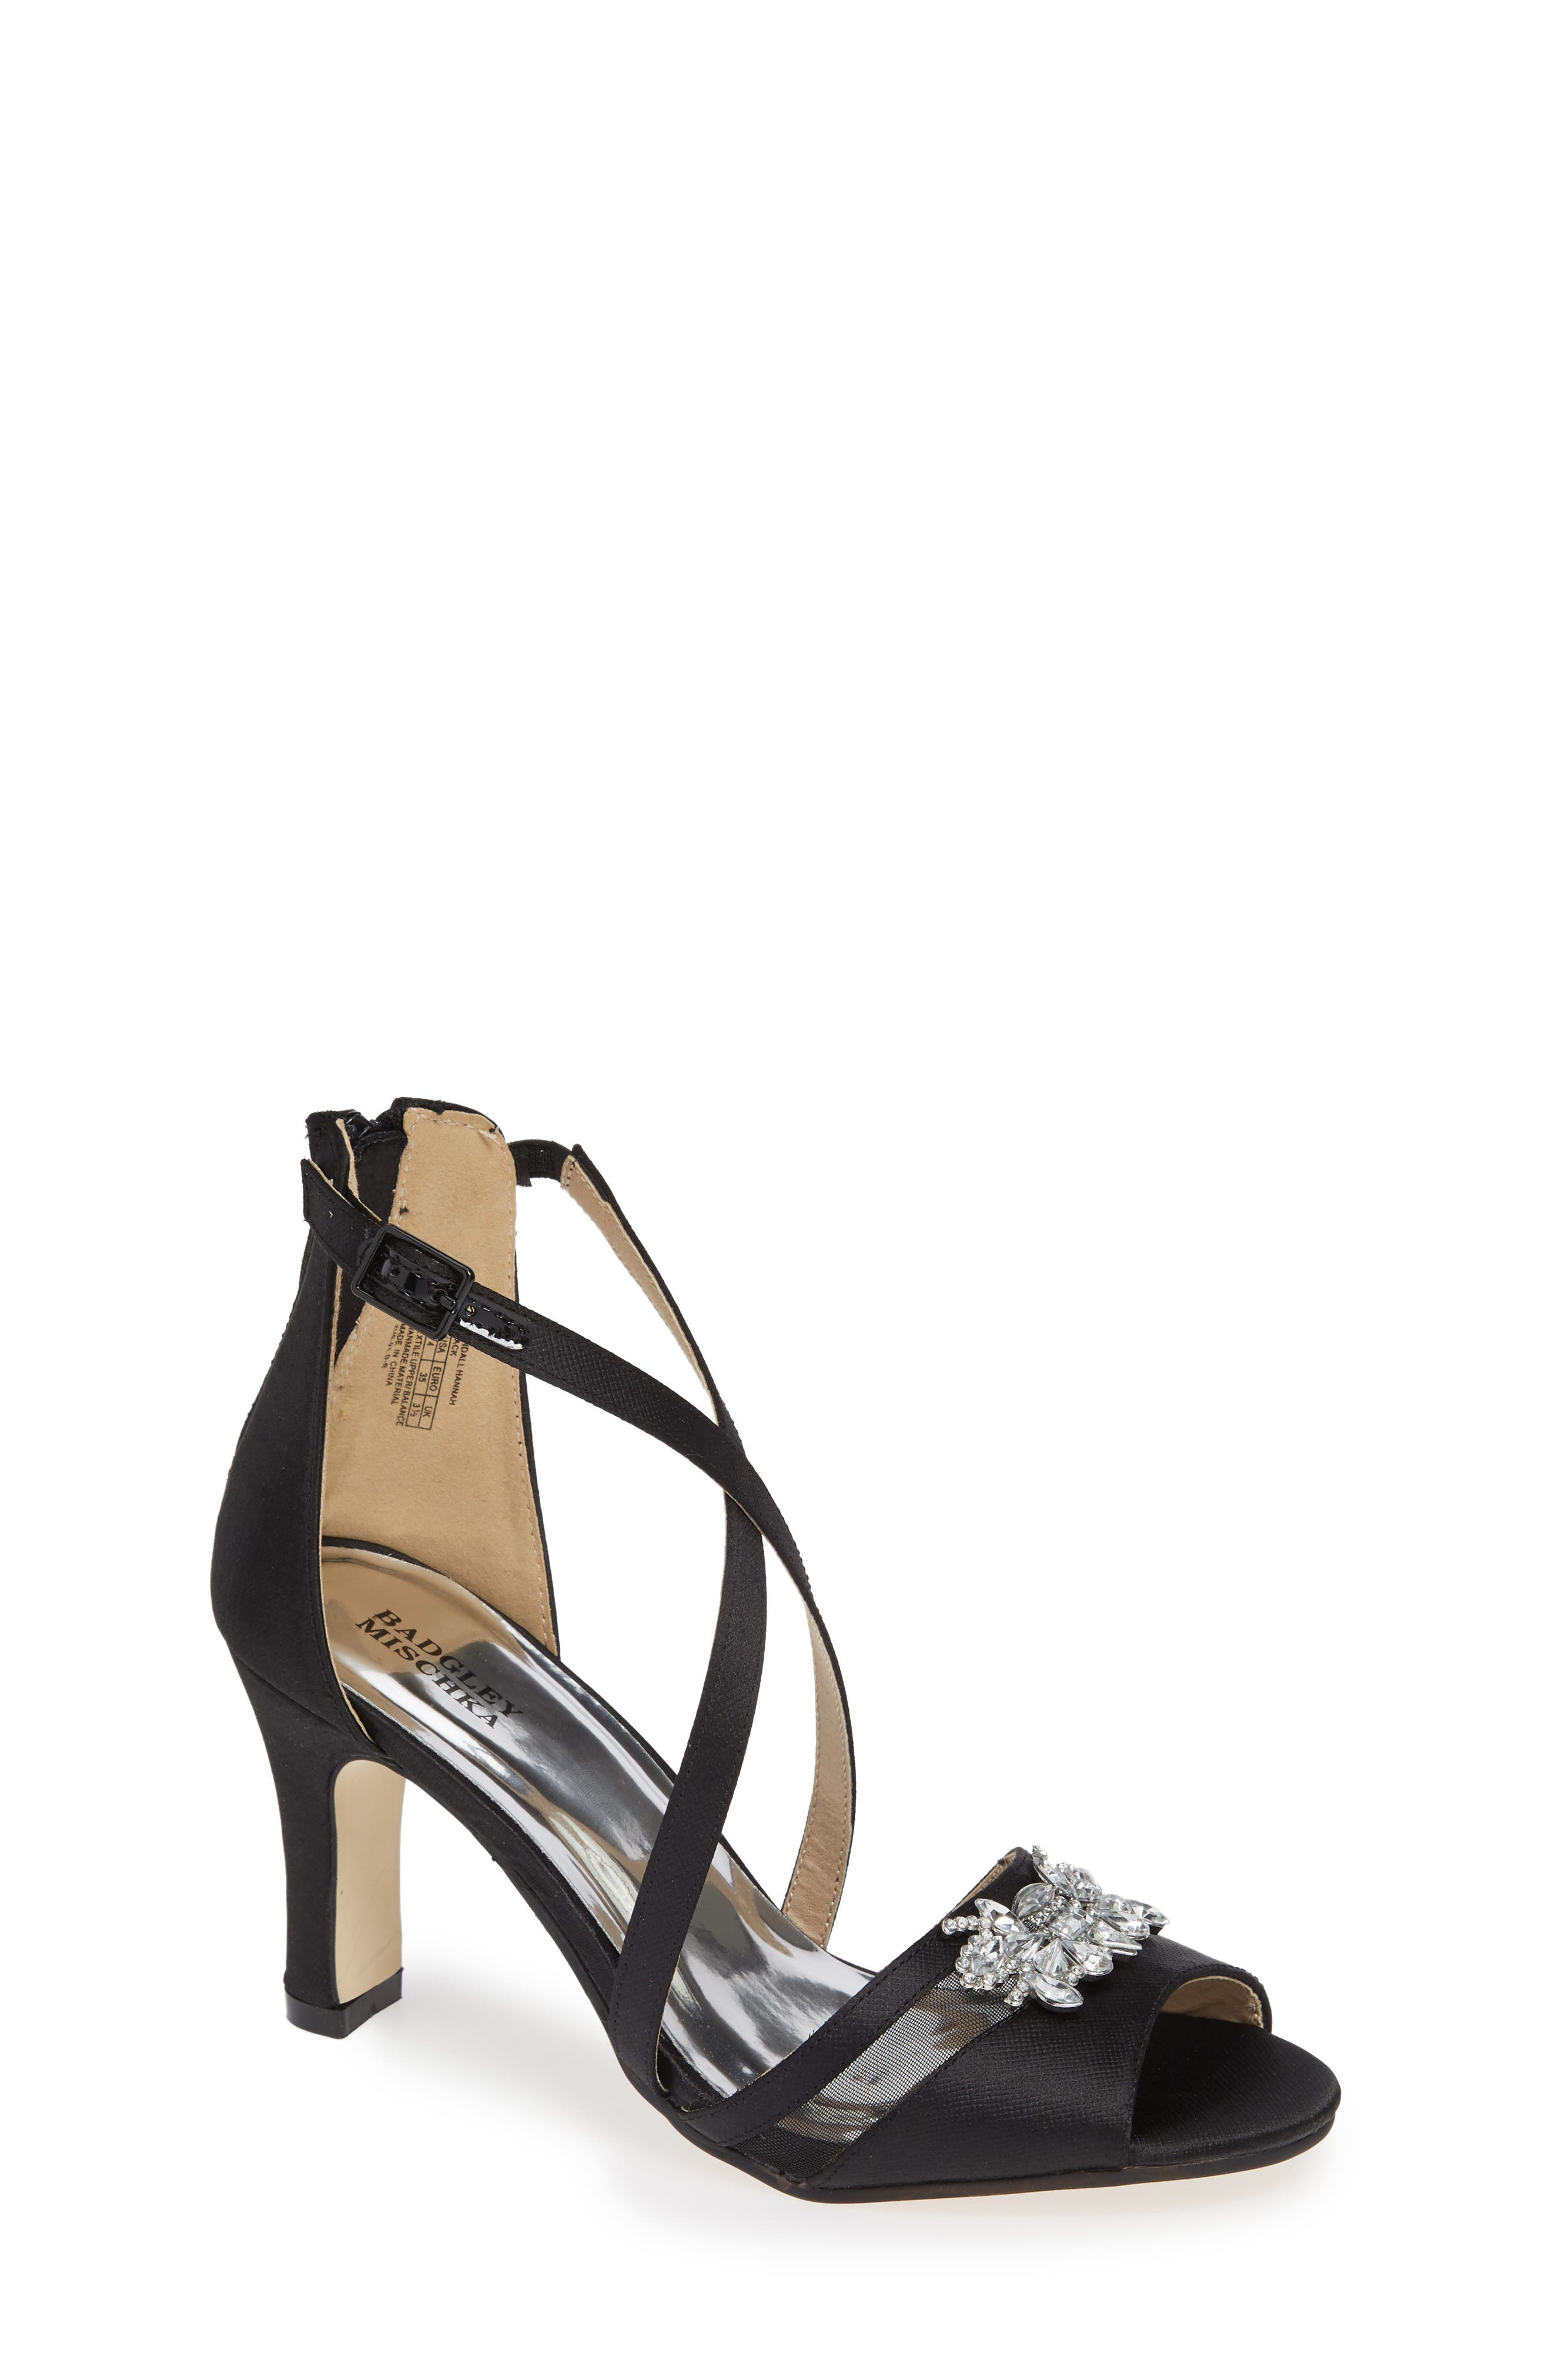 Girls' Badgley Mischka Collection Shoes